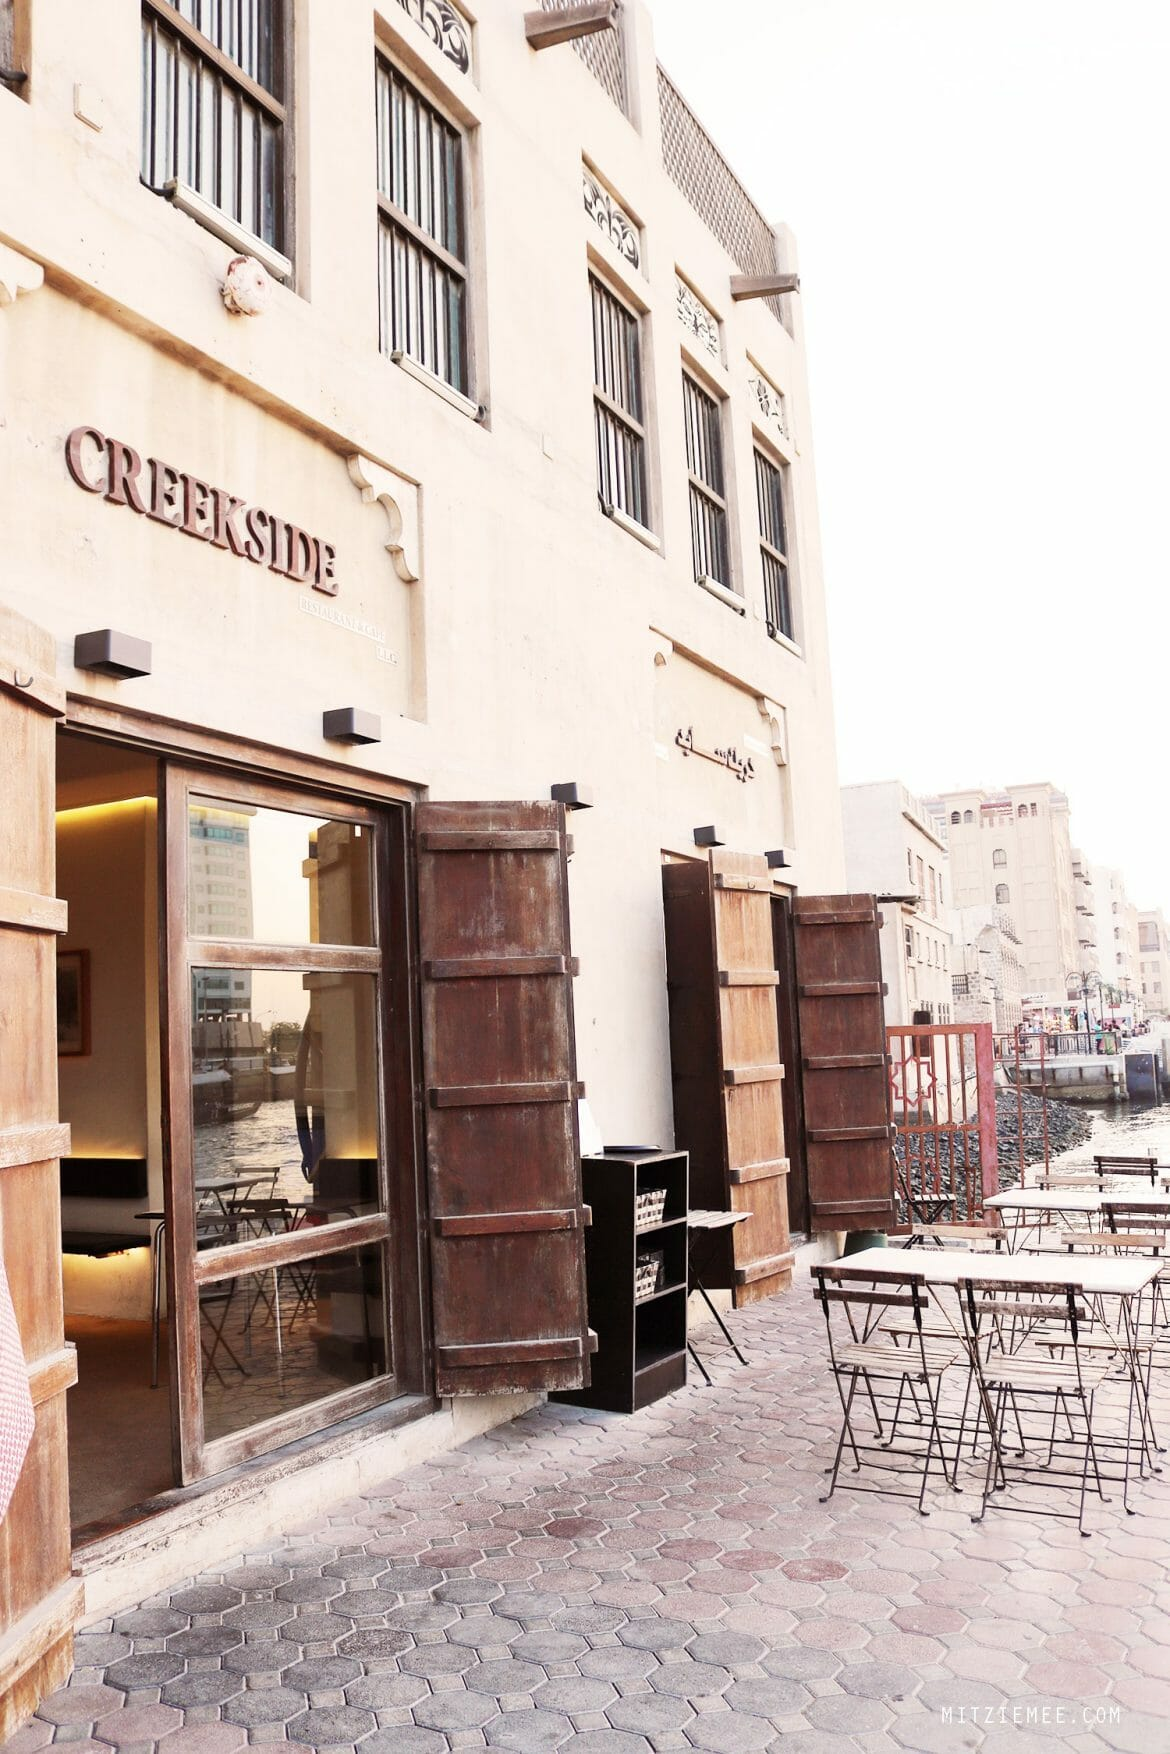 Creekside Cafe, Dubai Creek